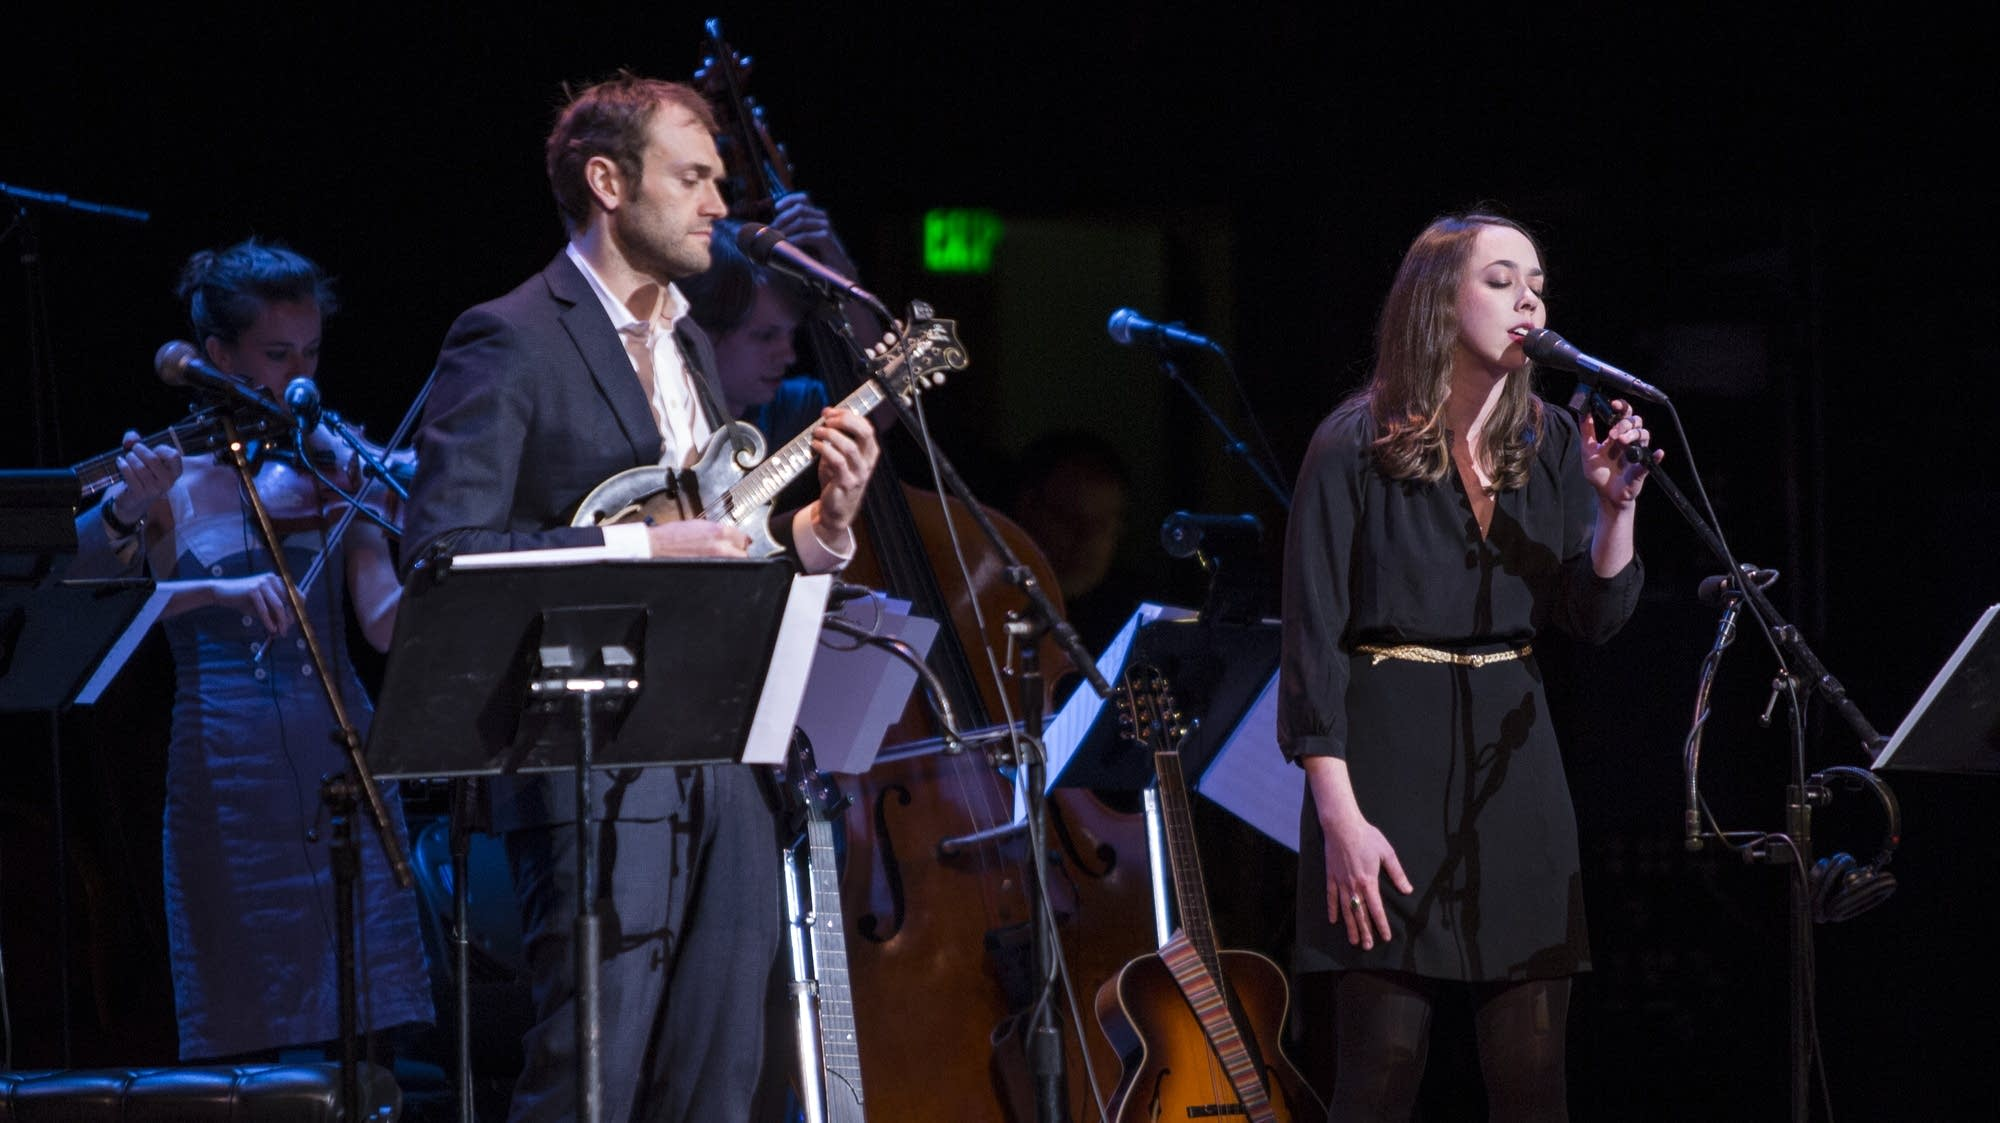 Chis Thile and Sarah Jarosz